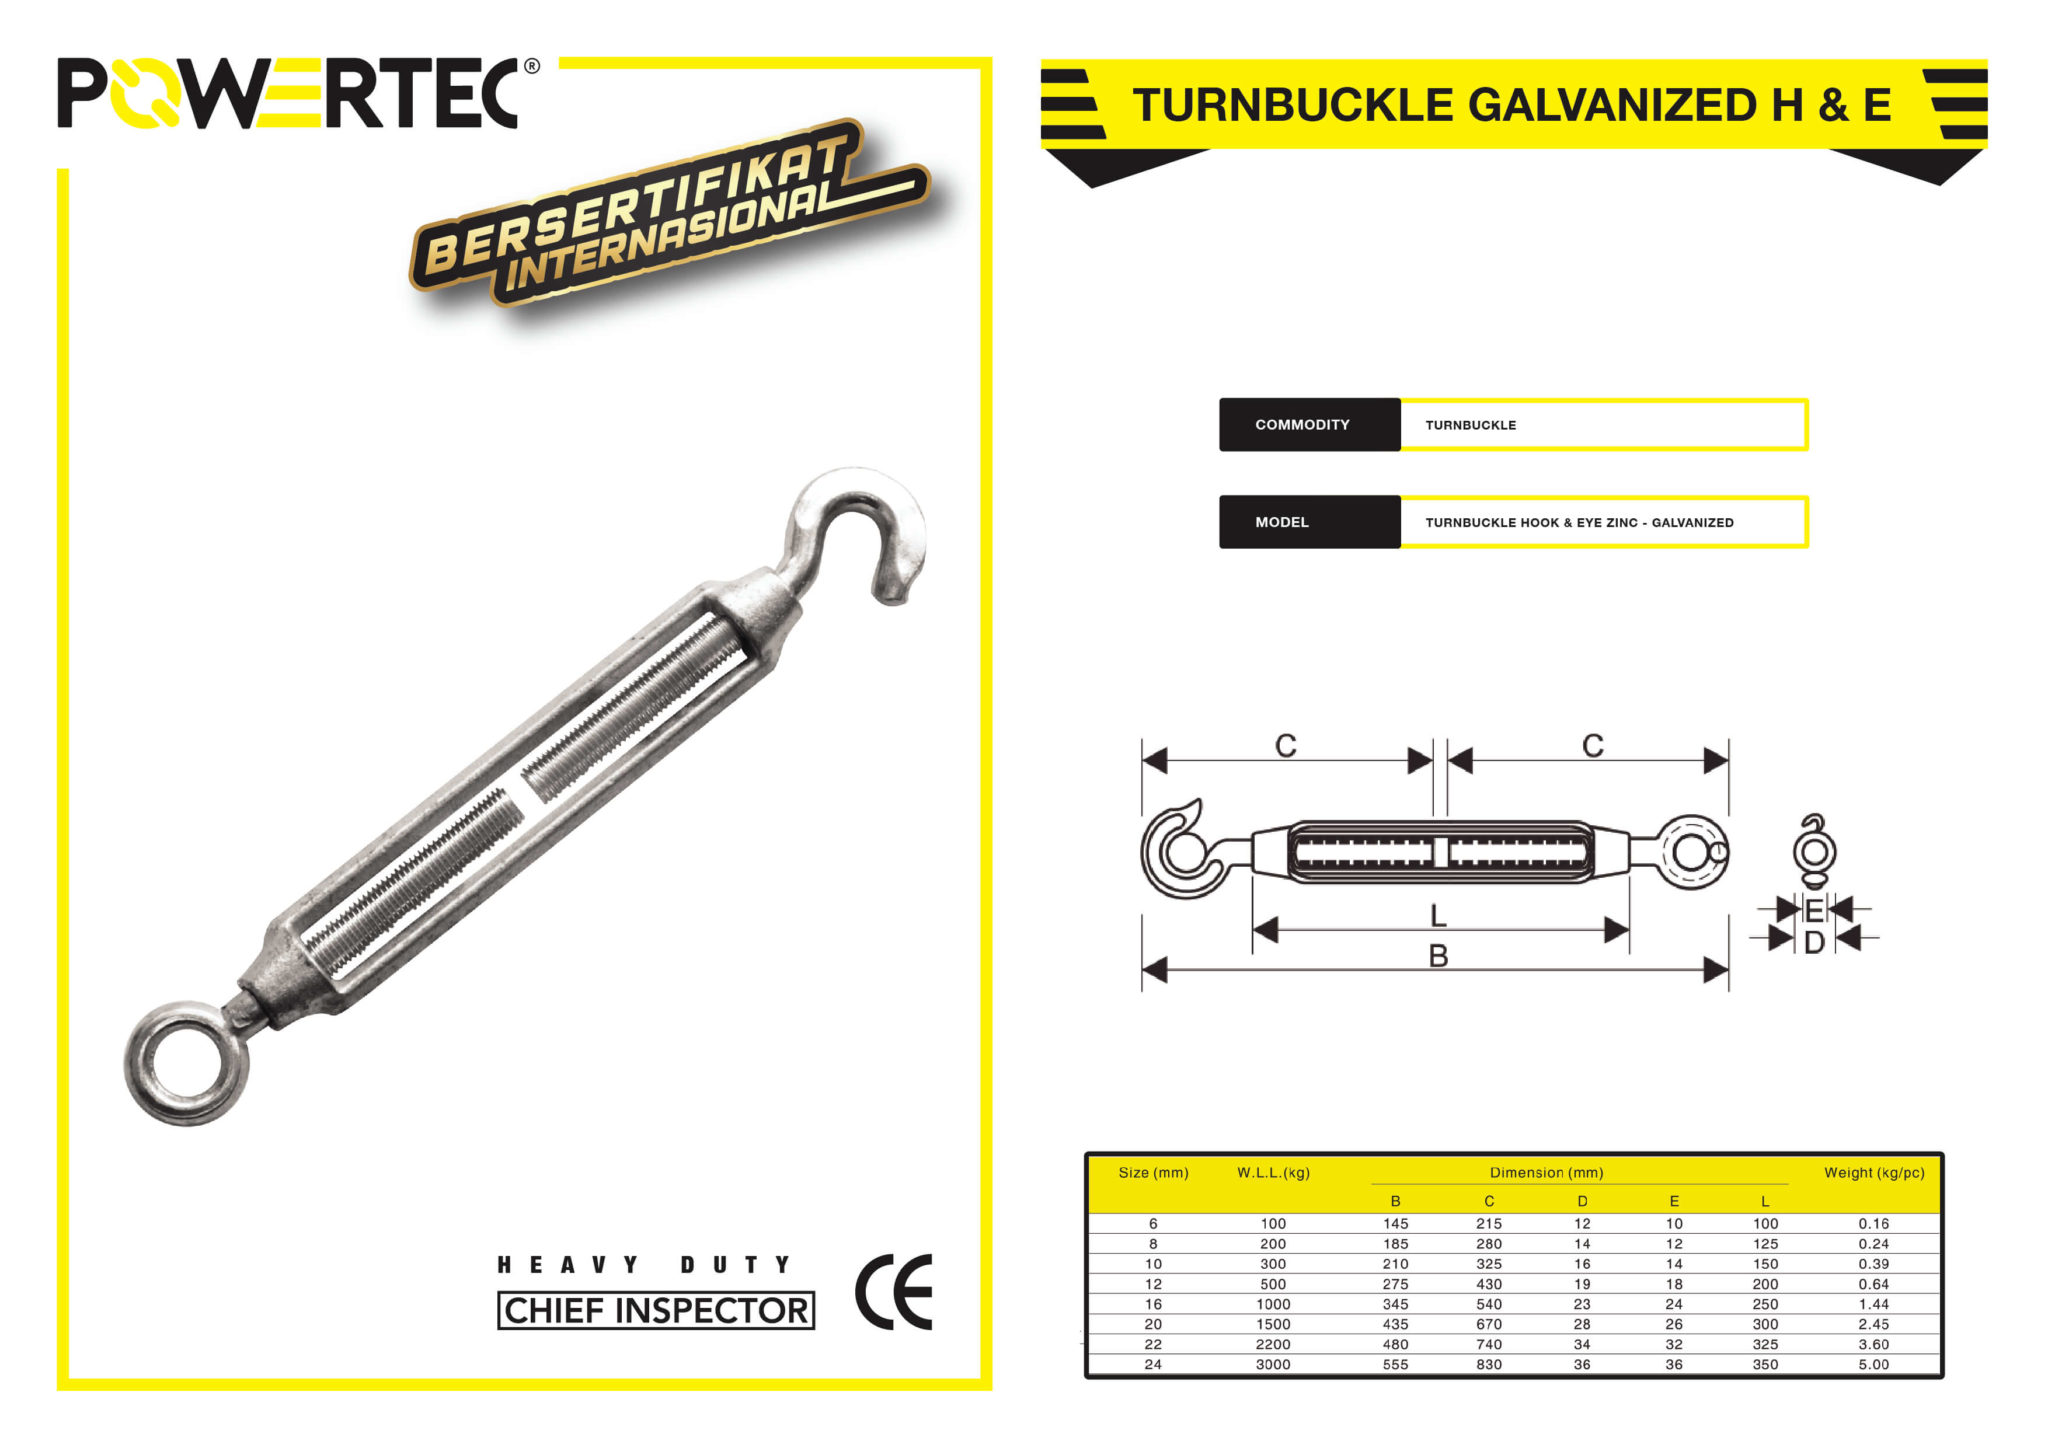 POWERTEC TURNBUCKLE GALVANIZED HOOK & EYE BROCHURE